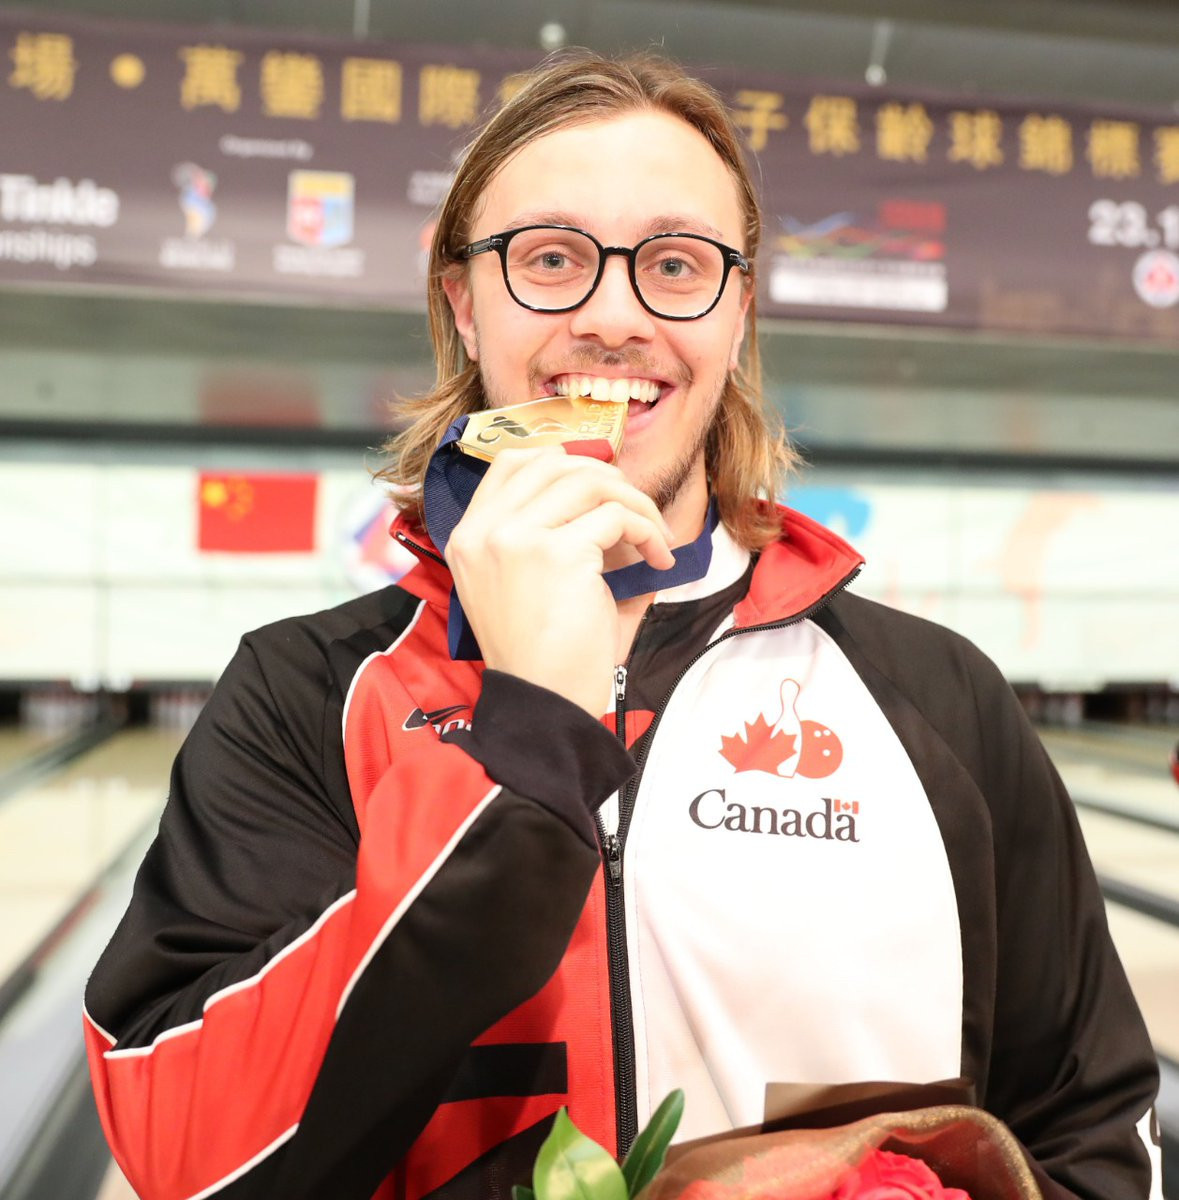 Canada's Mitch Hupé swept aside the United States' Kyle Troup to claim the masters title on the final day of the Men's World Tenpin Bowling Championships in Hong Kong ©World Bowling/Twitter